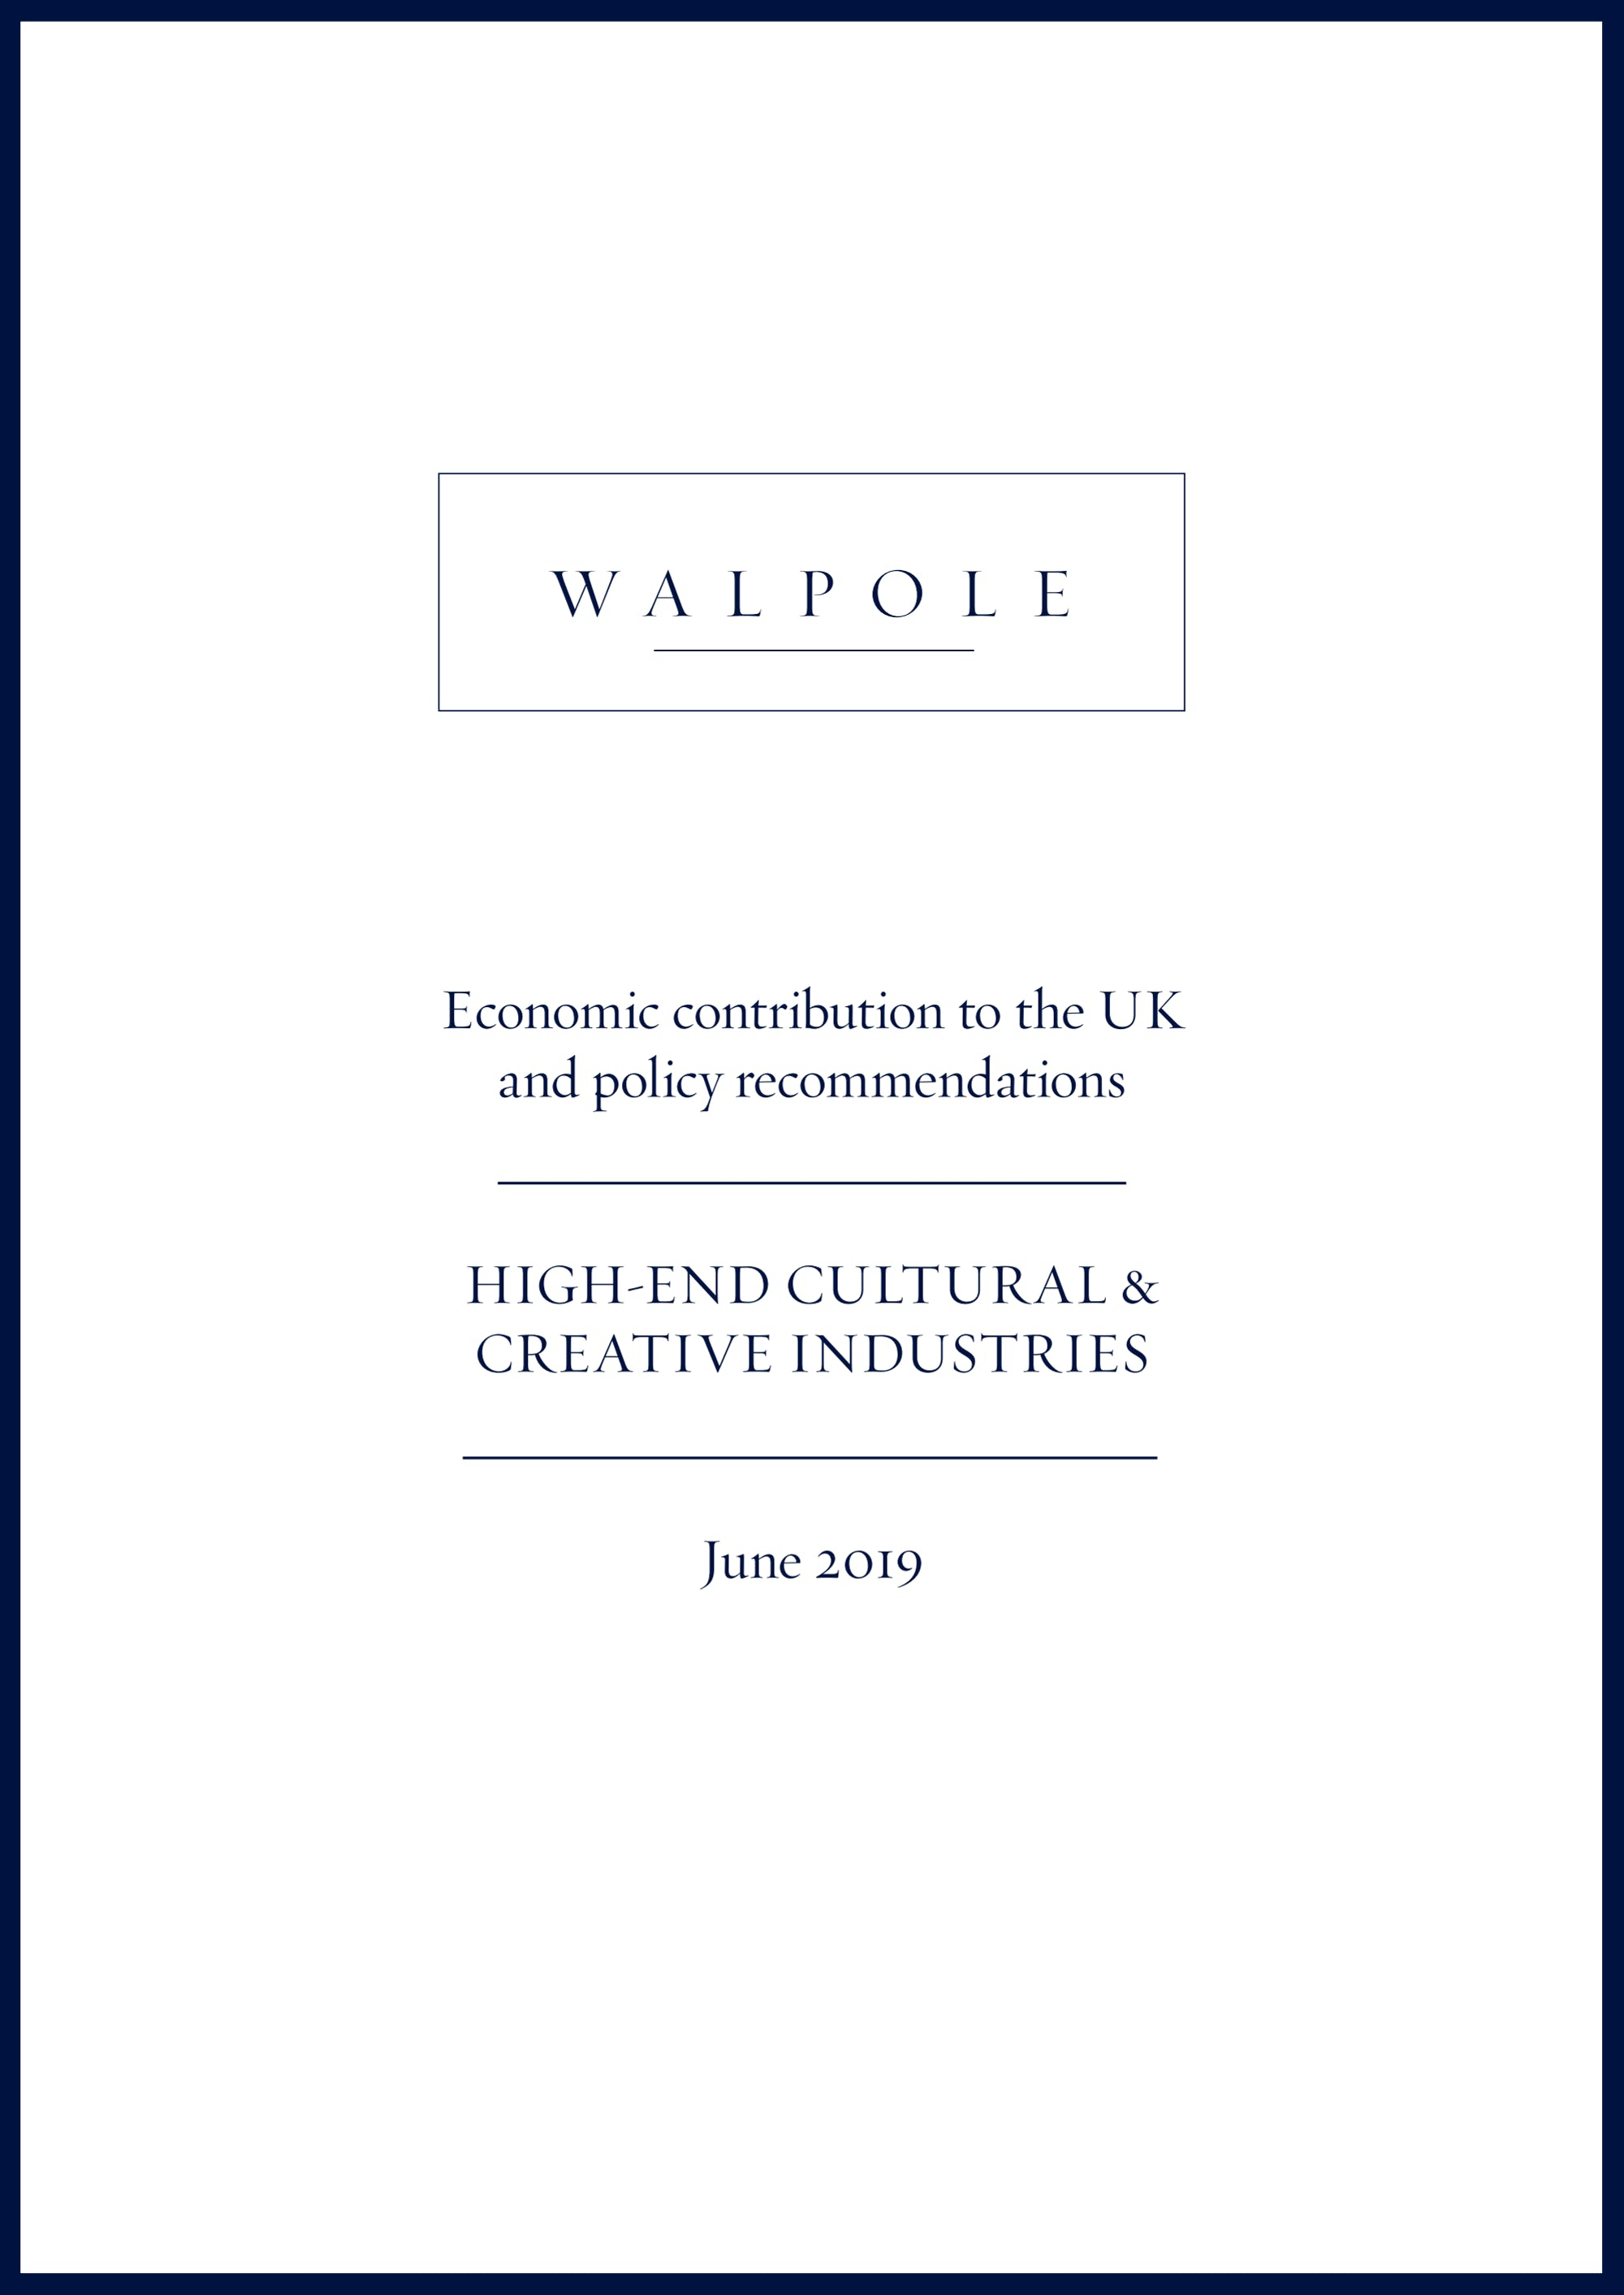 Walpole announces 49% growth for the British luxury sector in four years